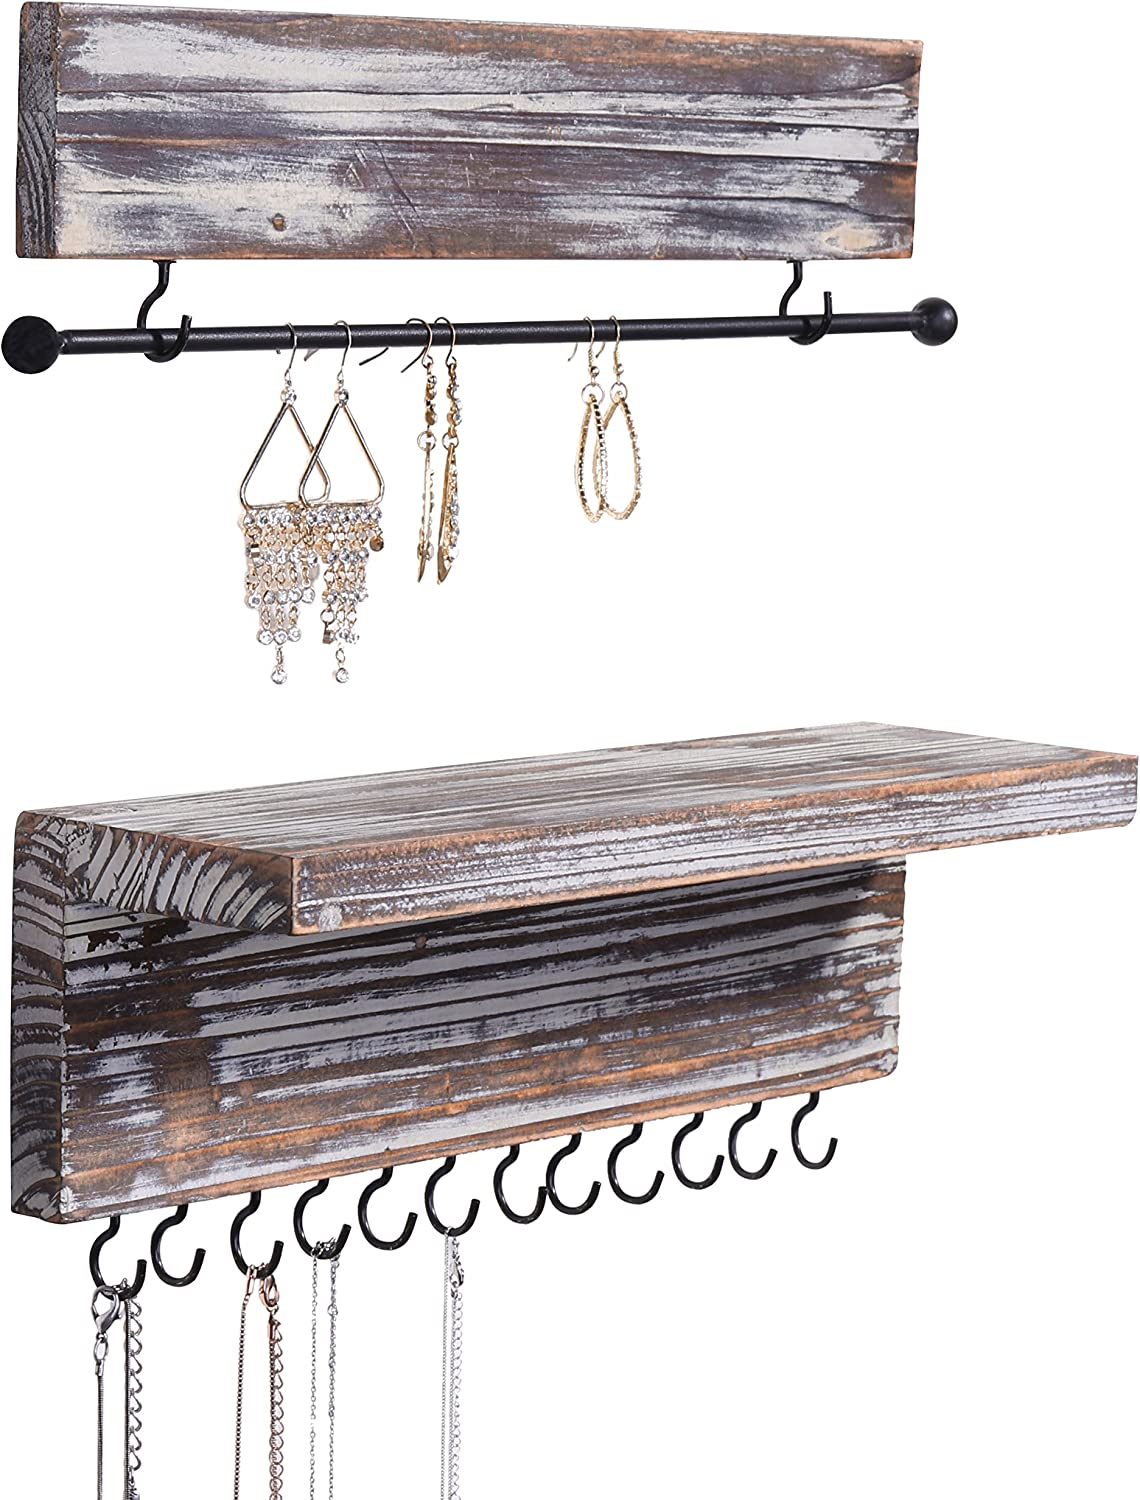 MyGift 2-Piece Wall Mounted Rustic Torched Wood Hanging Jewelry Organizers with 12 Hooks, Bracelet & Necklace Bar and Shelf